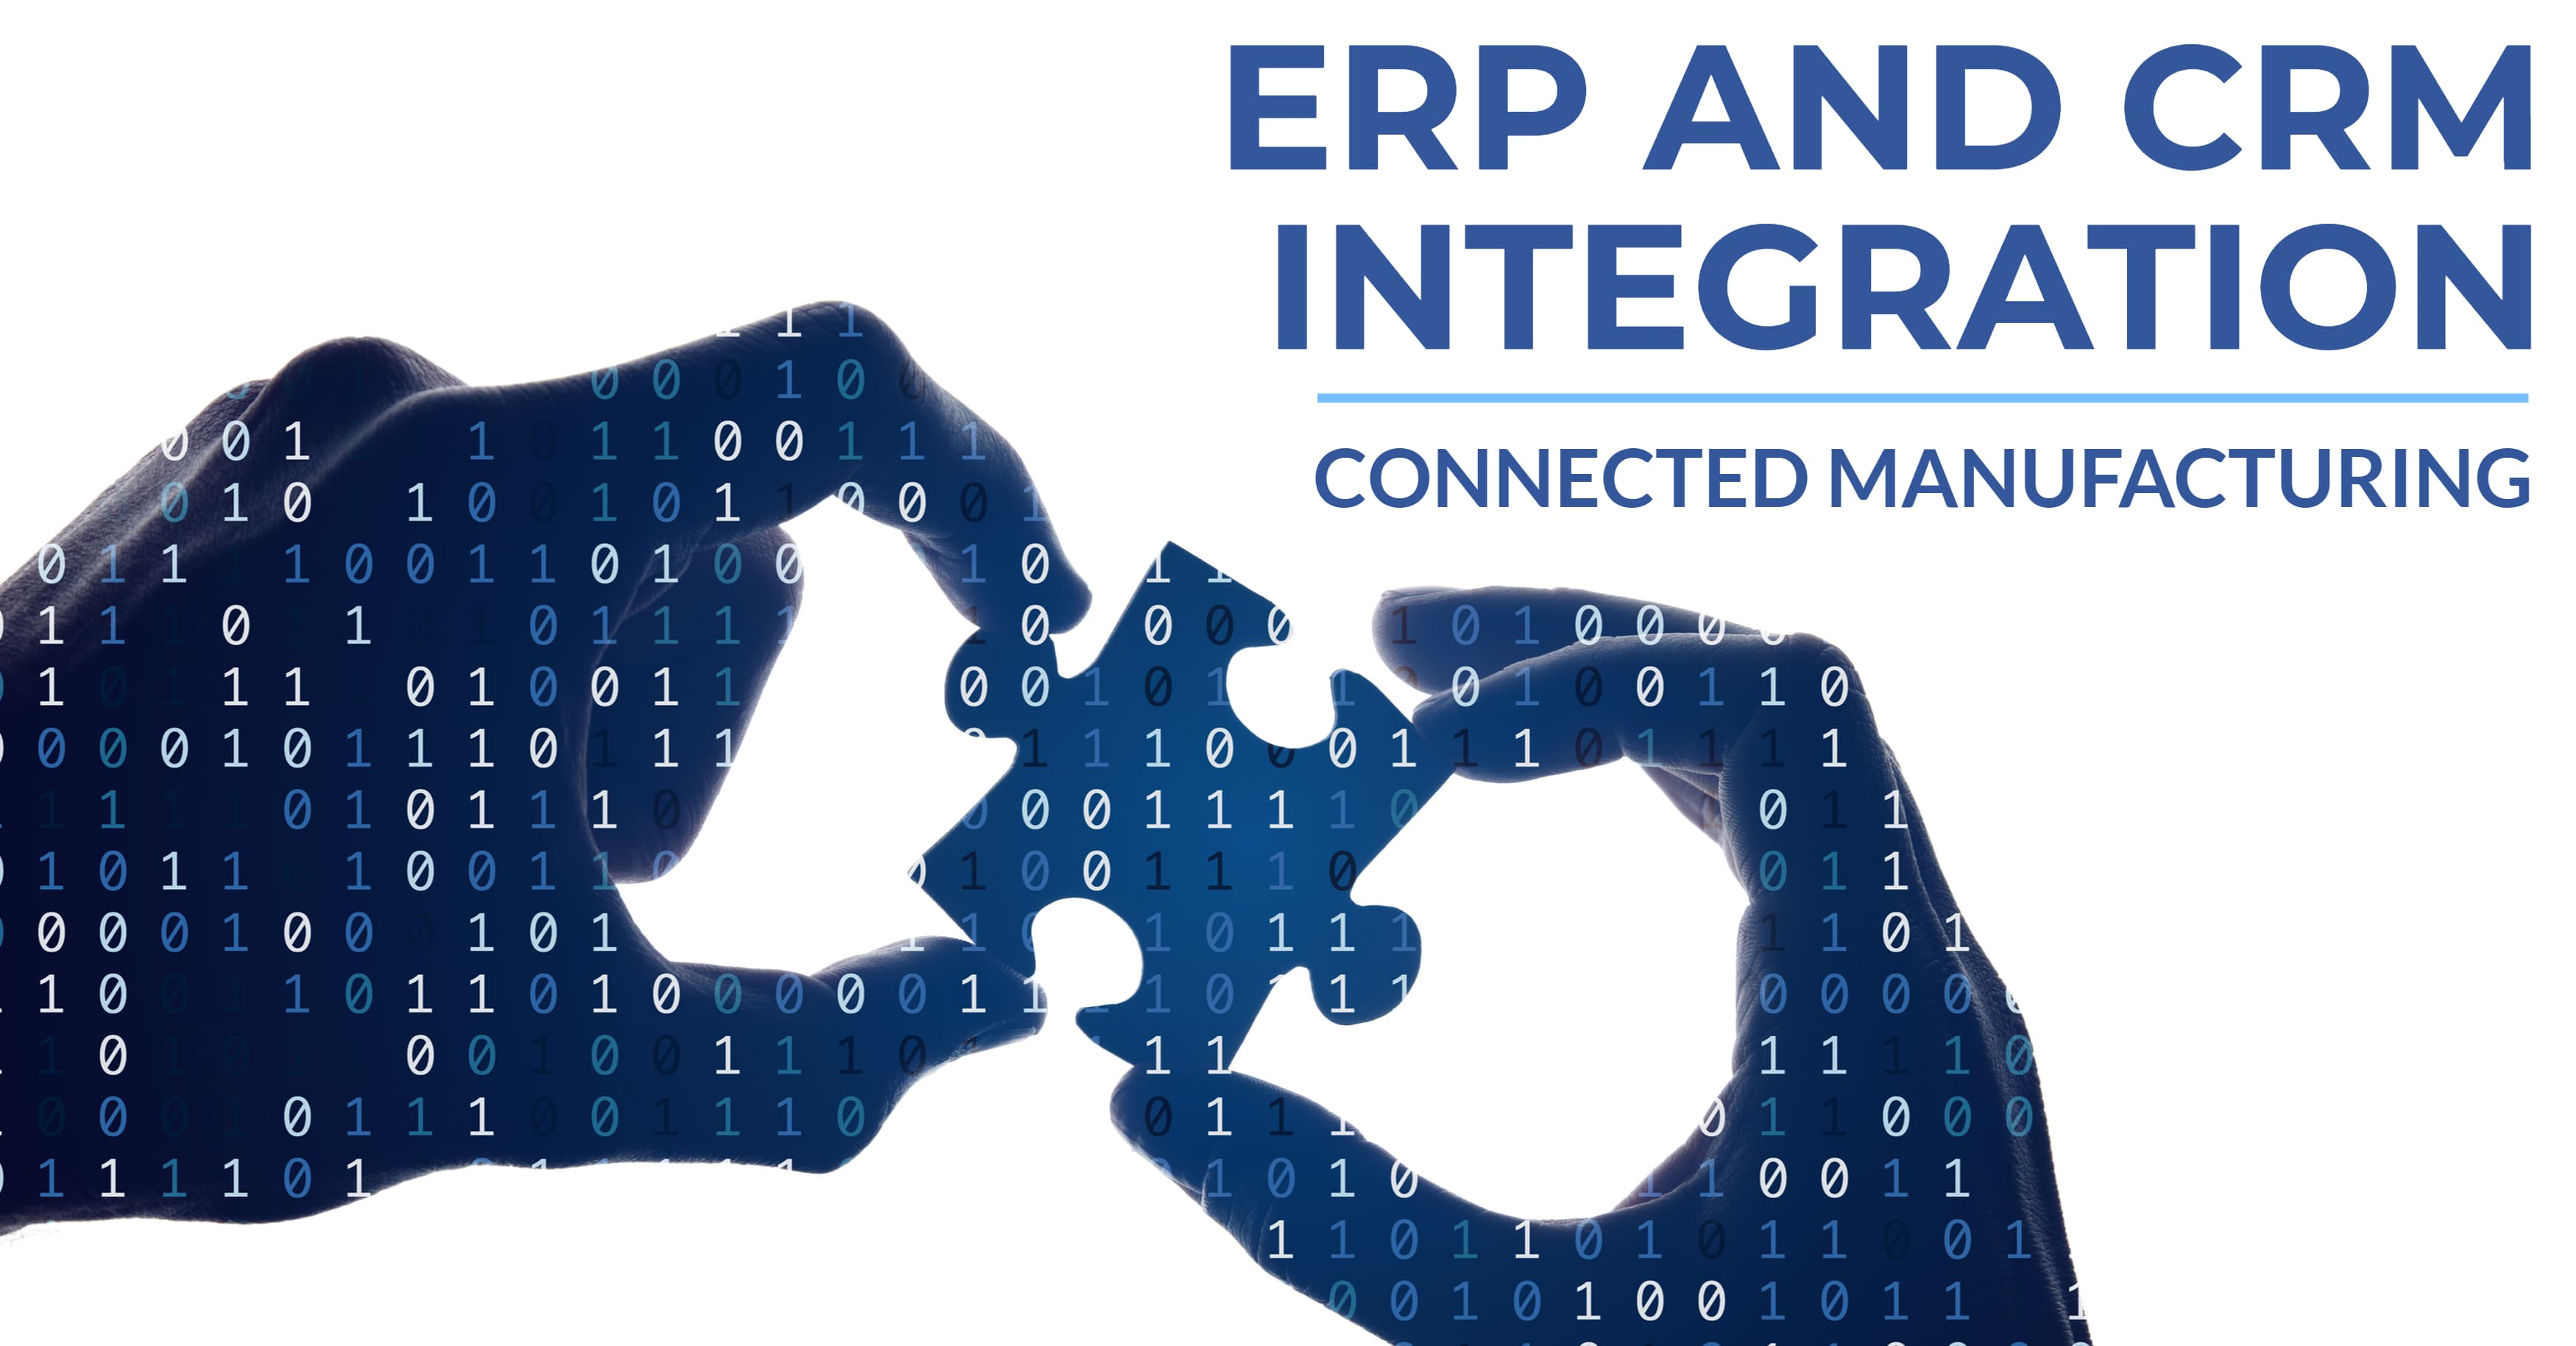 ERP CRM Integration Connected Manufacturing